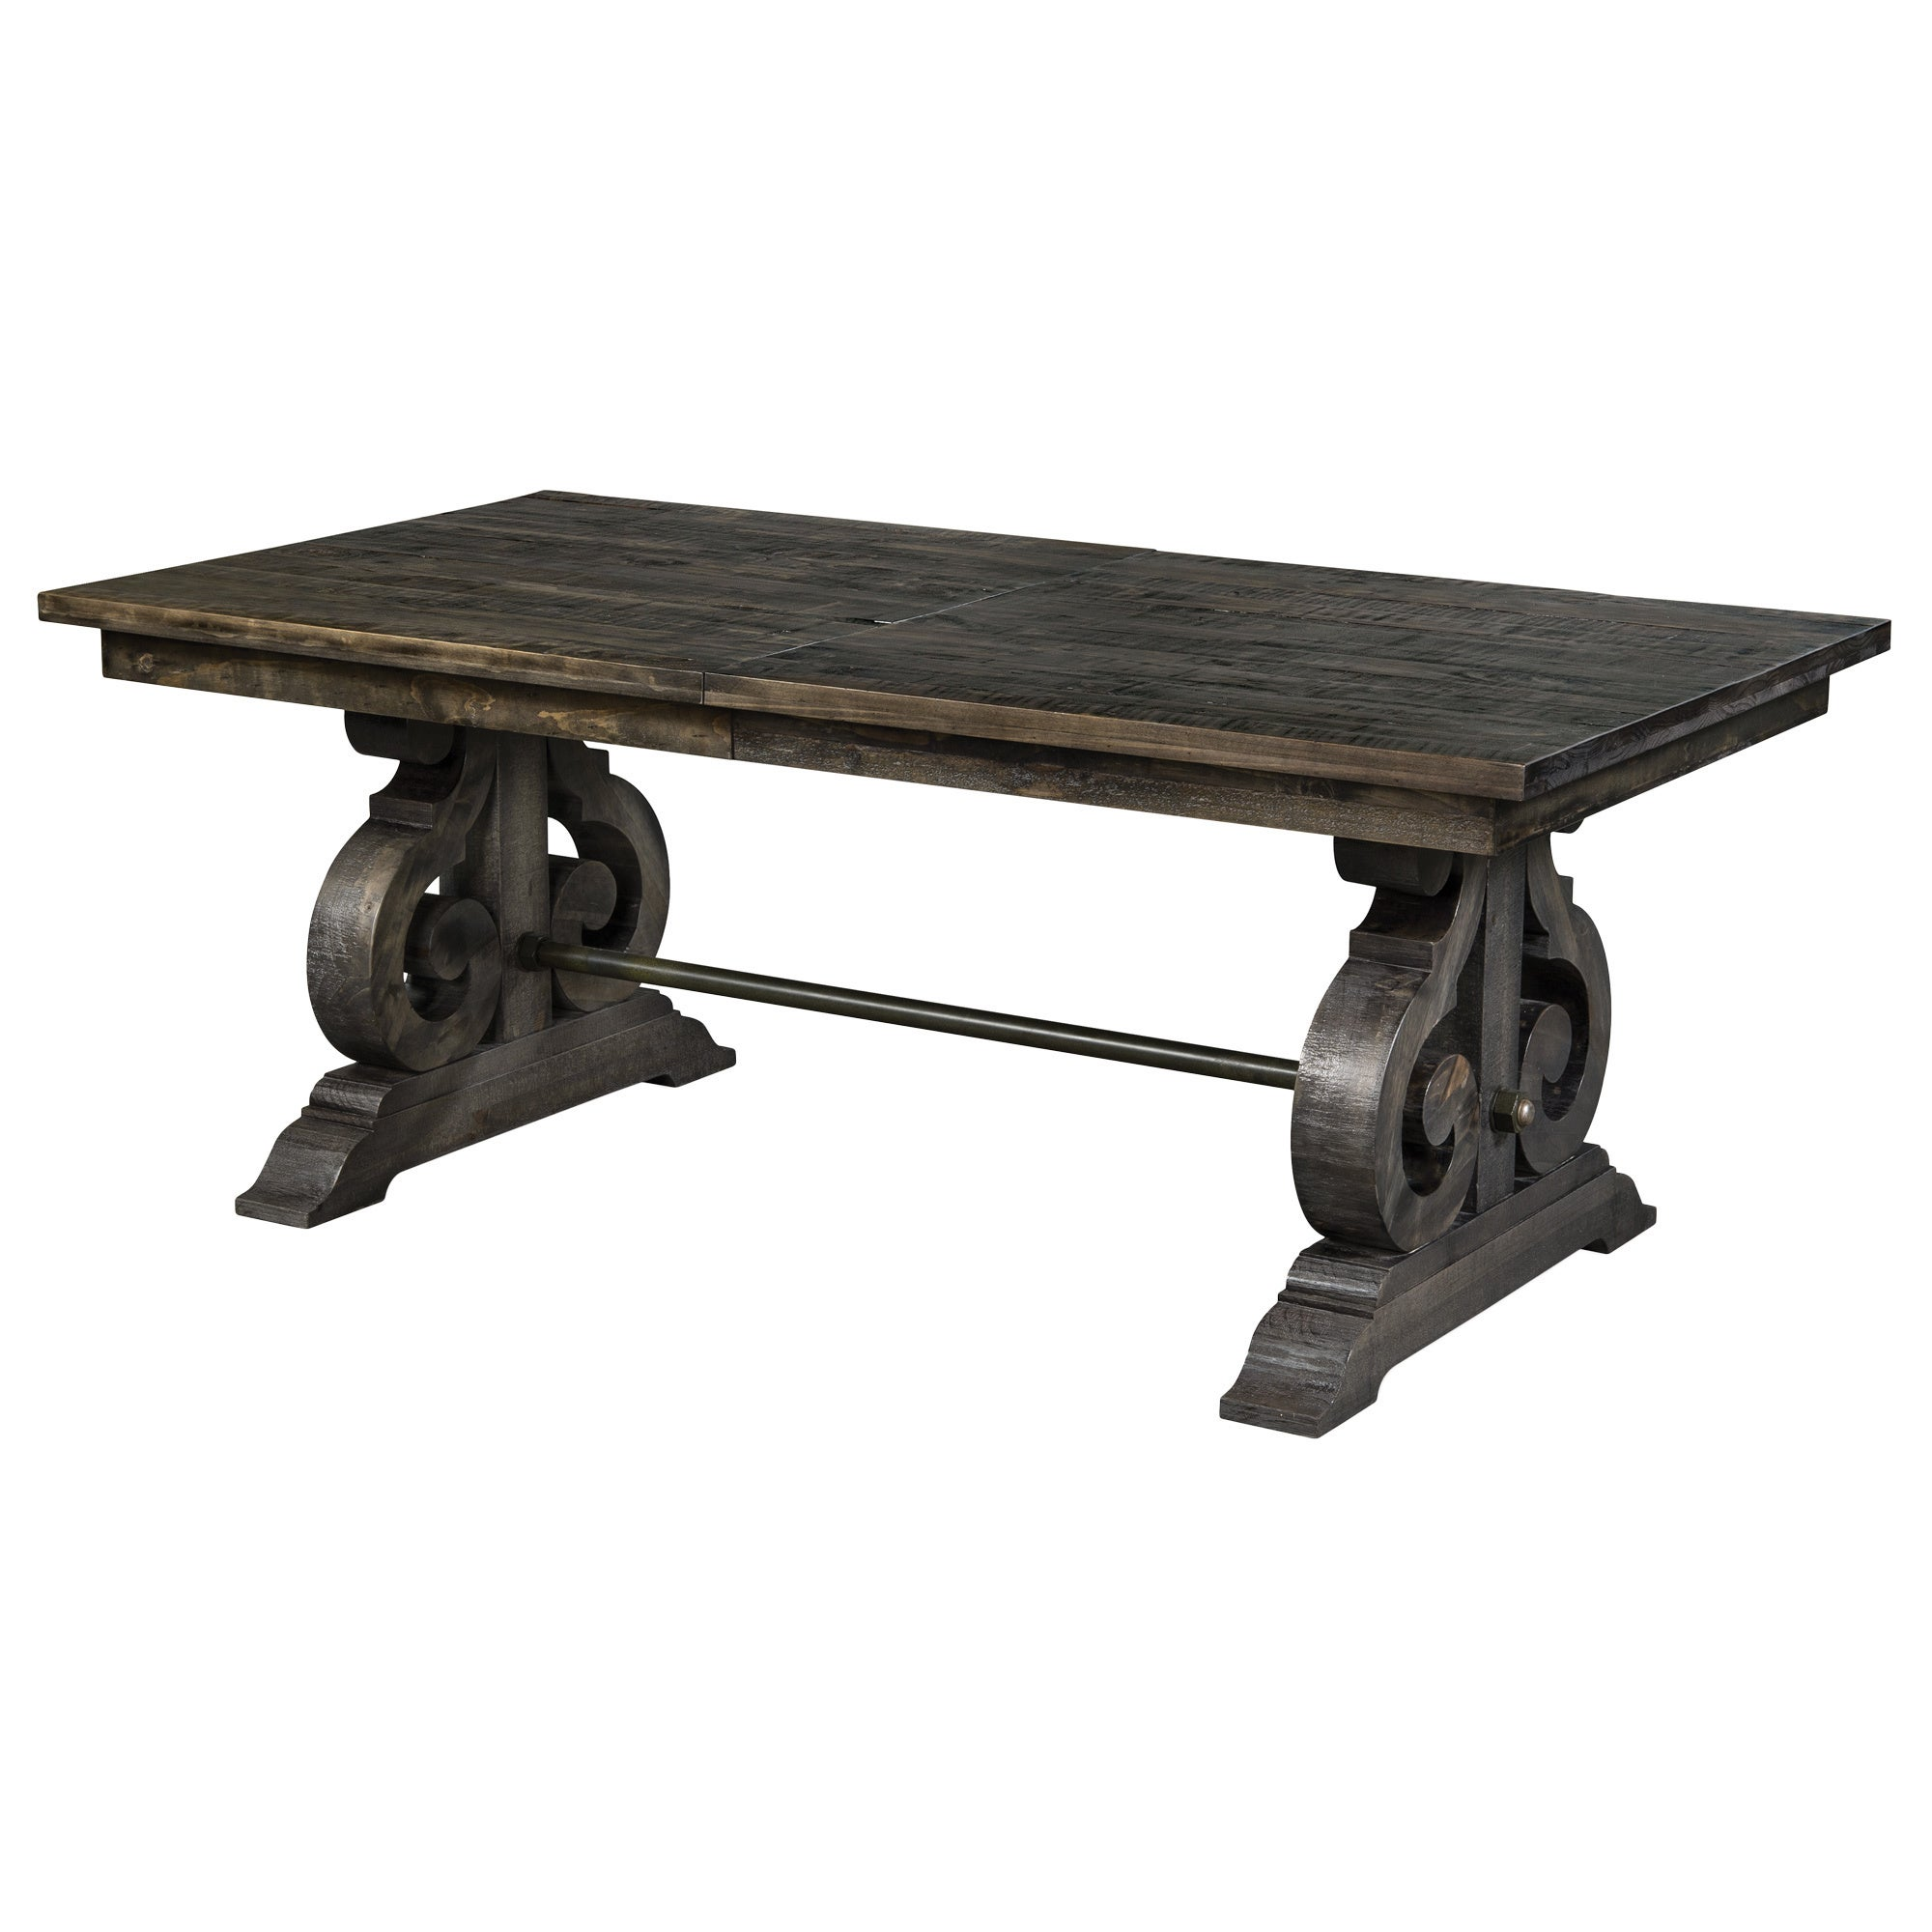 Shop Gracewood Hollow Barbara Aged Wood Rectangular Dining Table - Aged wood dining table